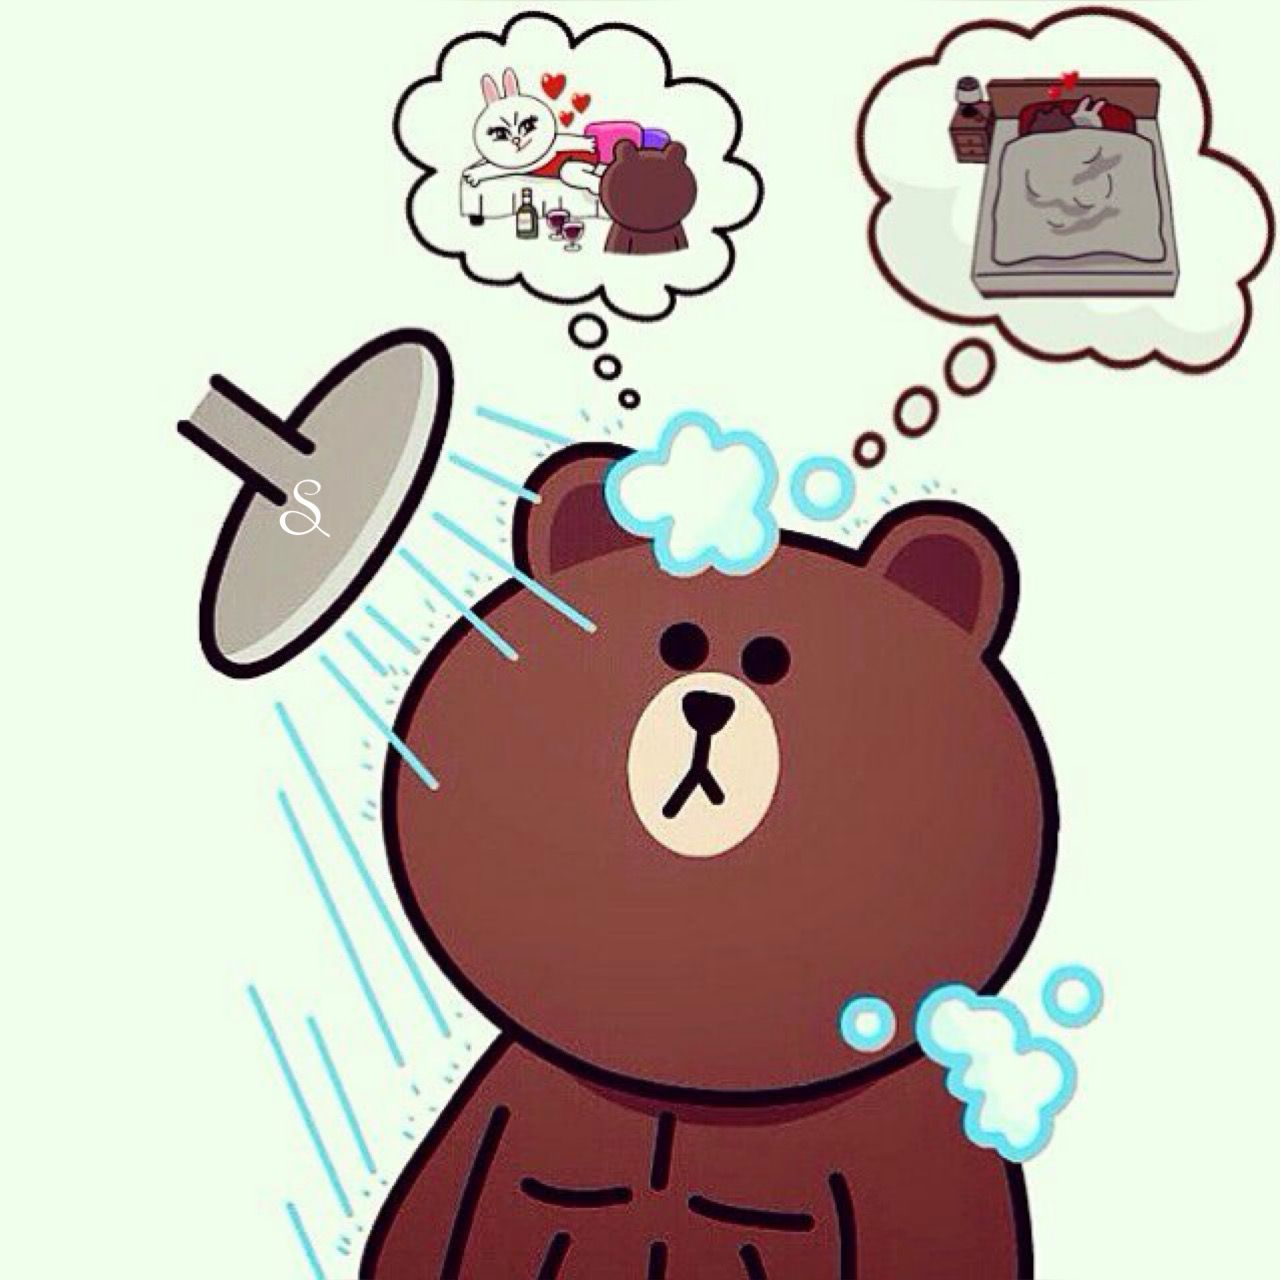 Pin By Fher1004 On Love Cony Brown Cute Love Gif Bunny And Bear